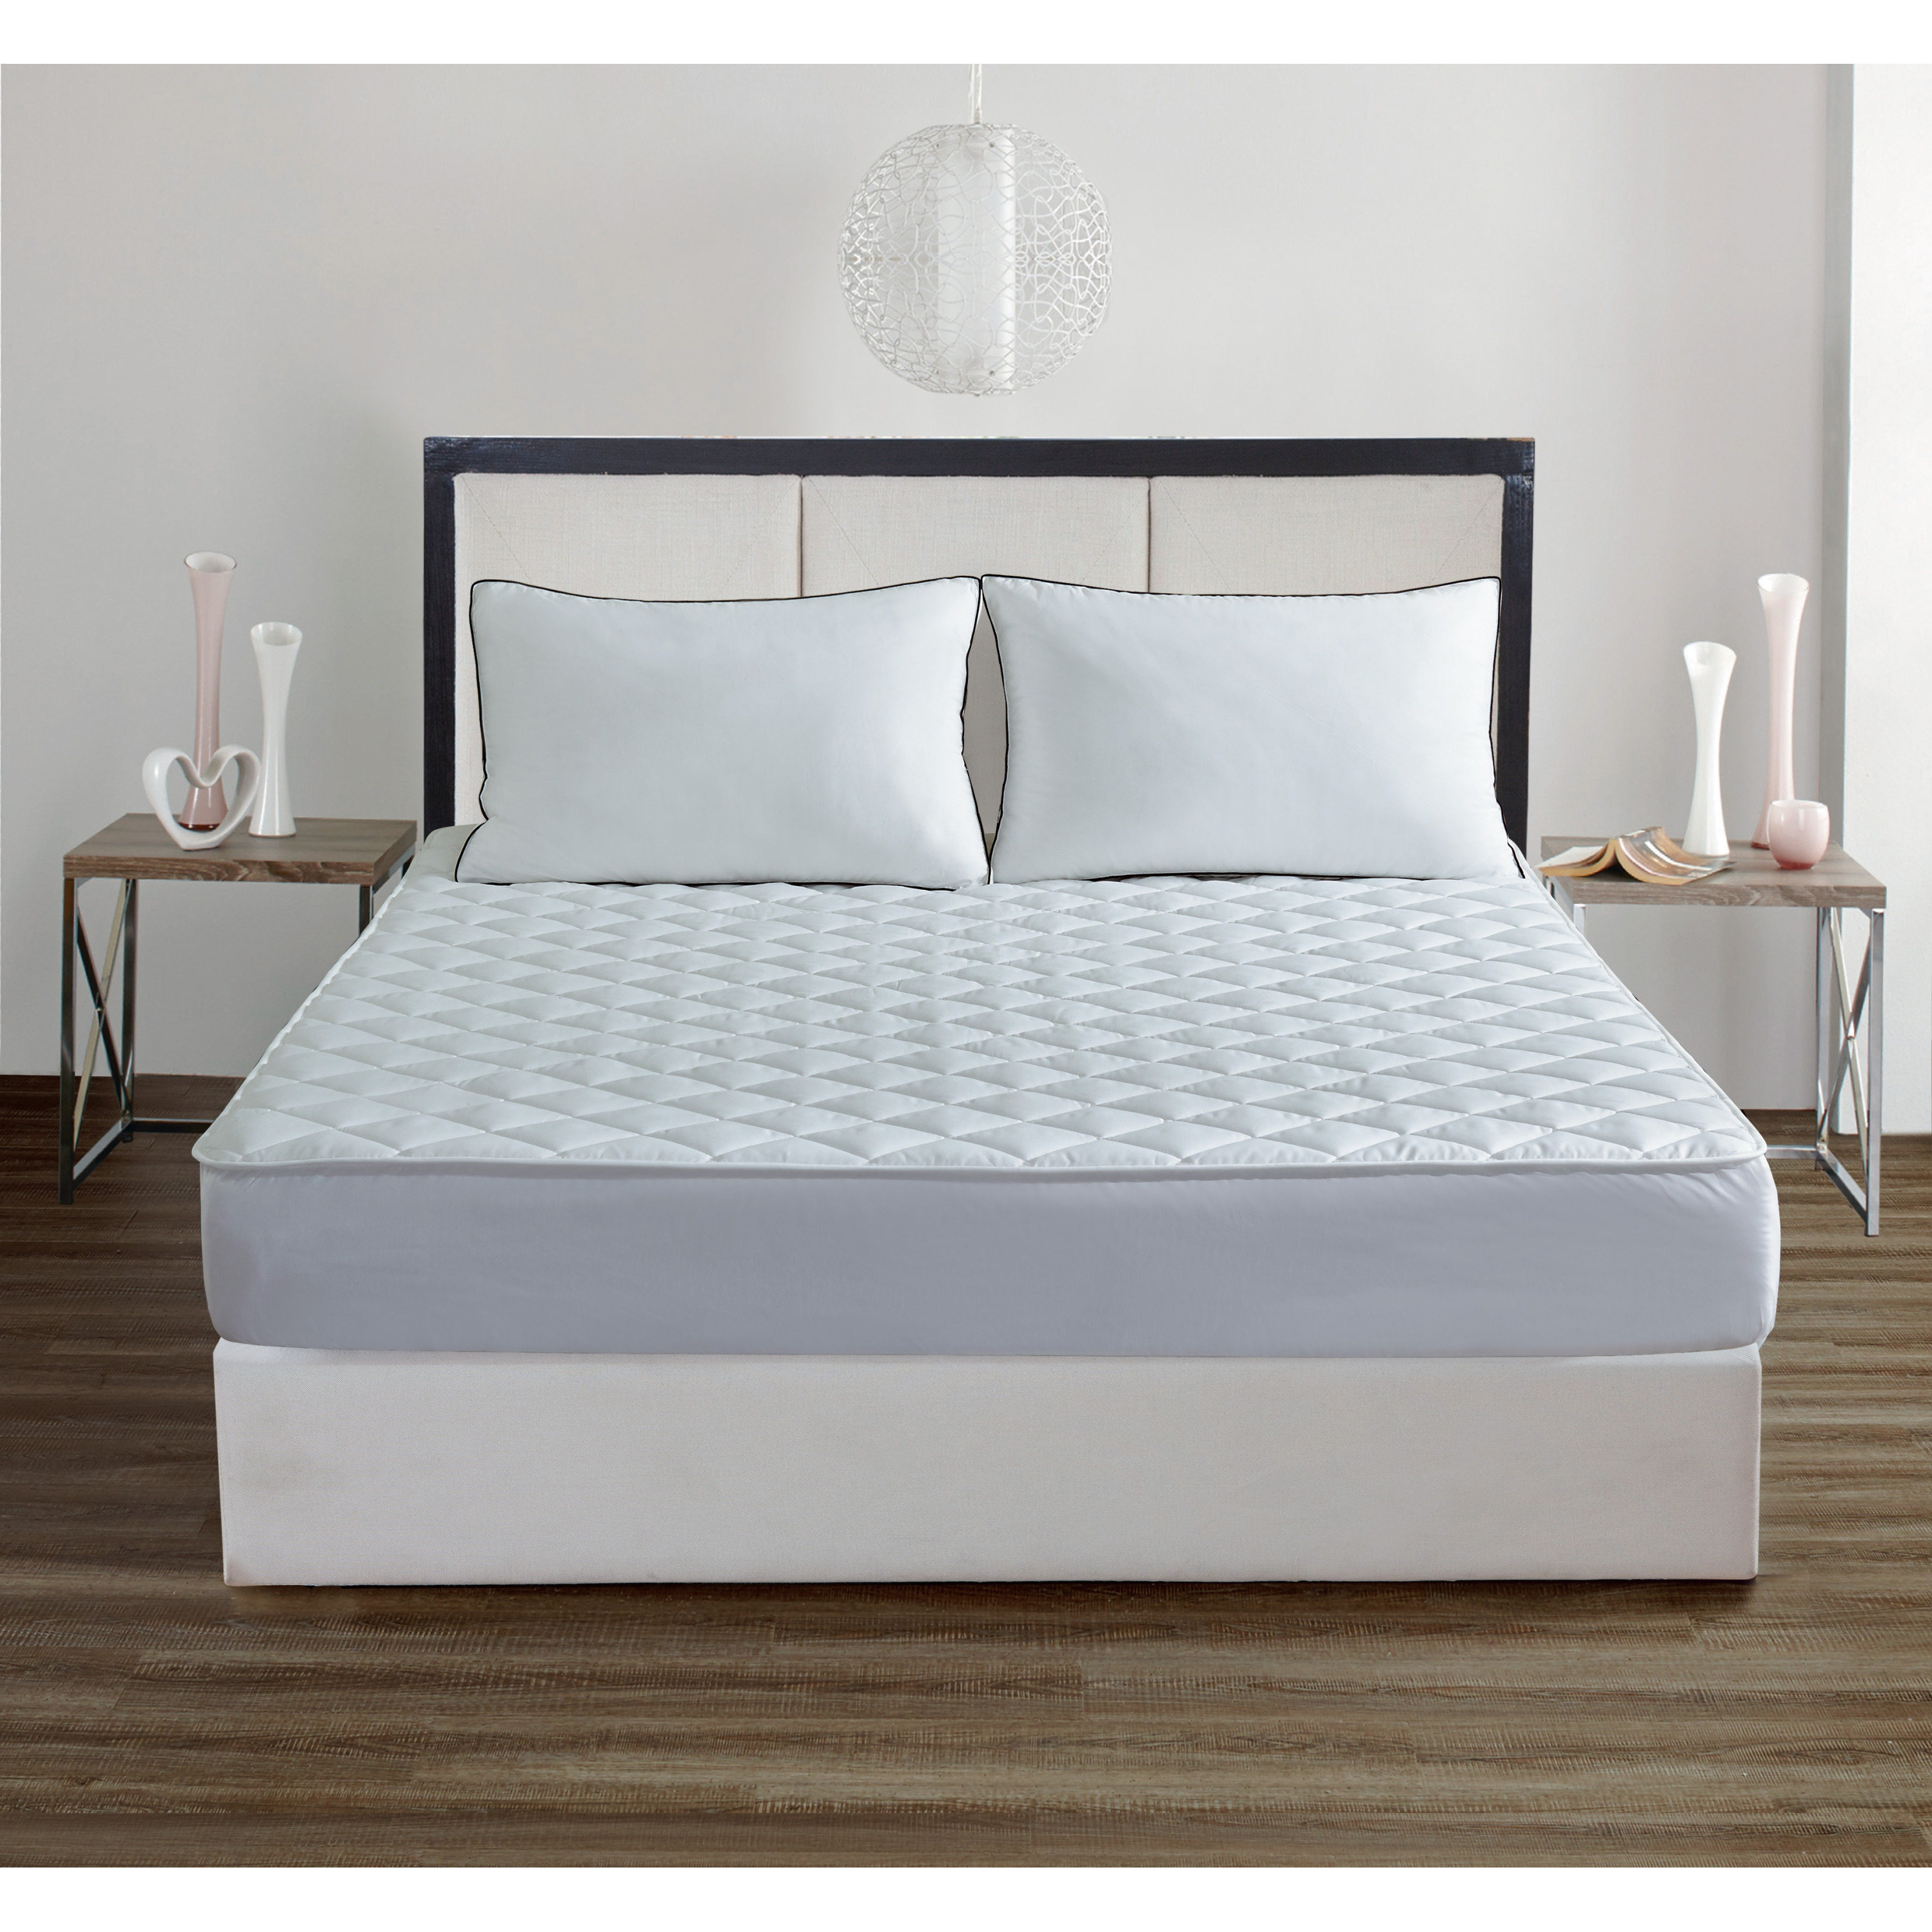 Oculus Living - Royal Hotel Collection Heavenly Microfiber Mattress ...